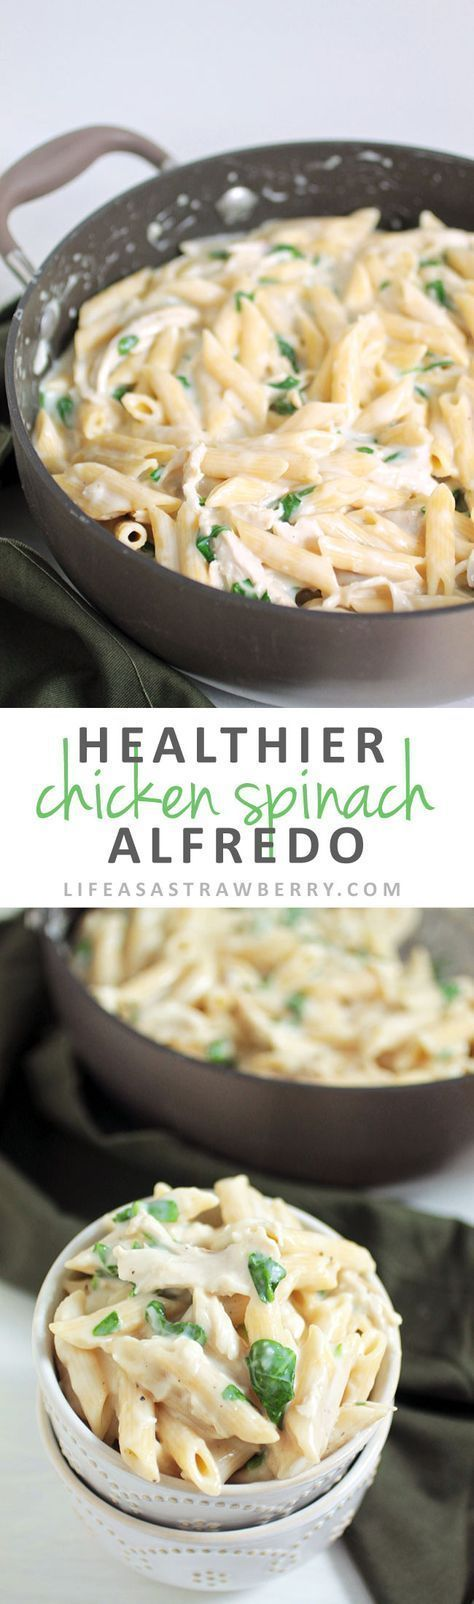 Healthier 30 Minute Chicken Spinach Alfredo  #Alfredo #Chicken #Healthier #Minute #Spinach  #Health...